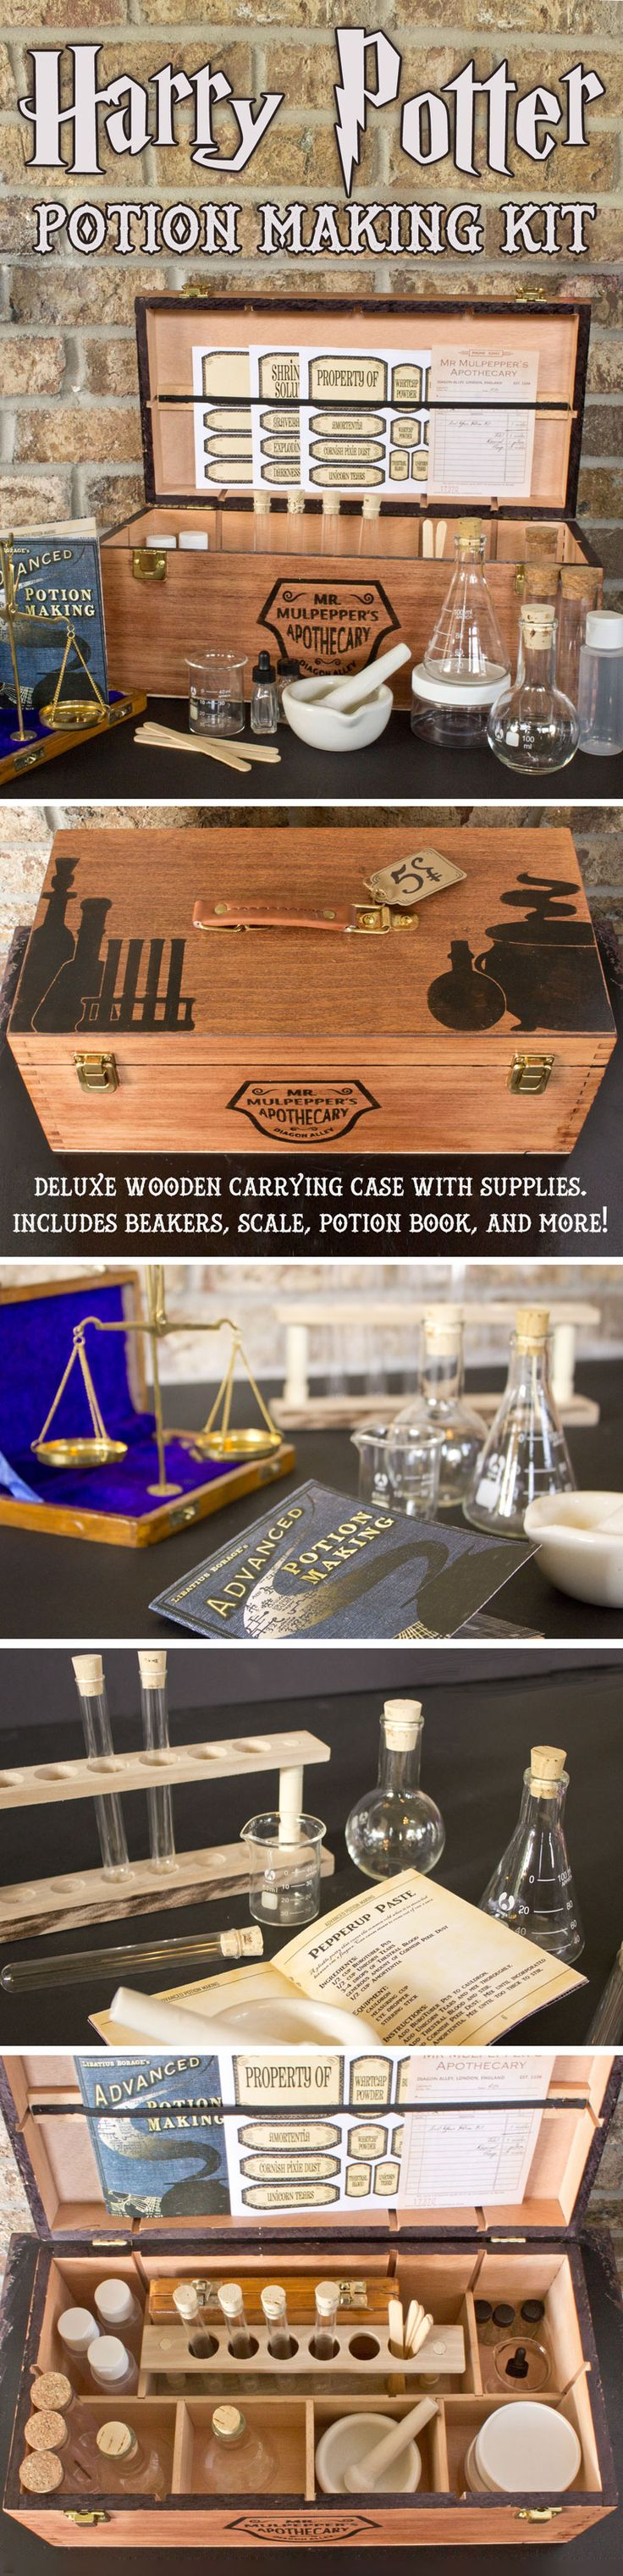 Get ready for Potions class with Professor Snape at Hogwarts with your very own potions kit from Mr. Mulpepper's Apothecary. The perfect gift for the Harry Potter fan in your life!